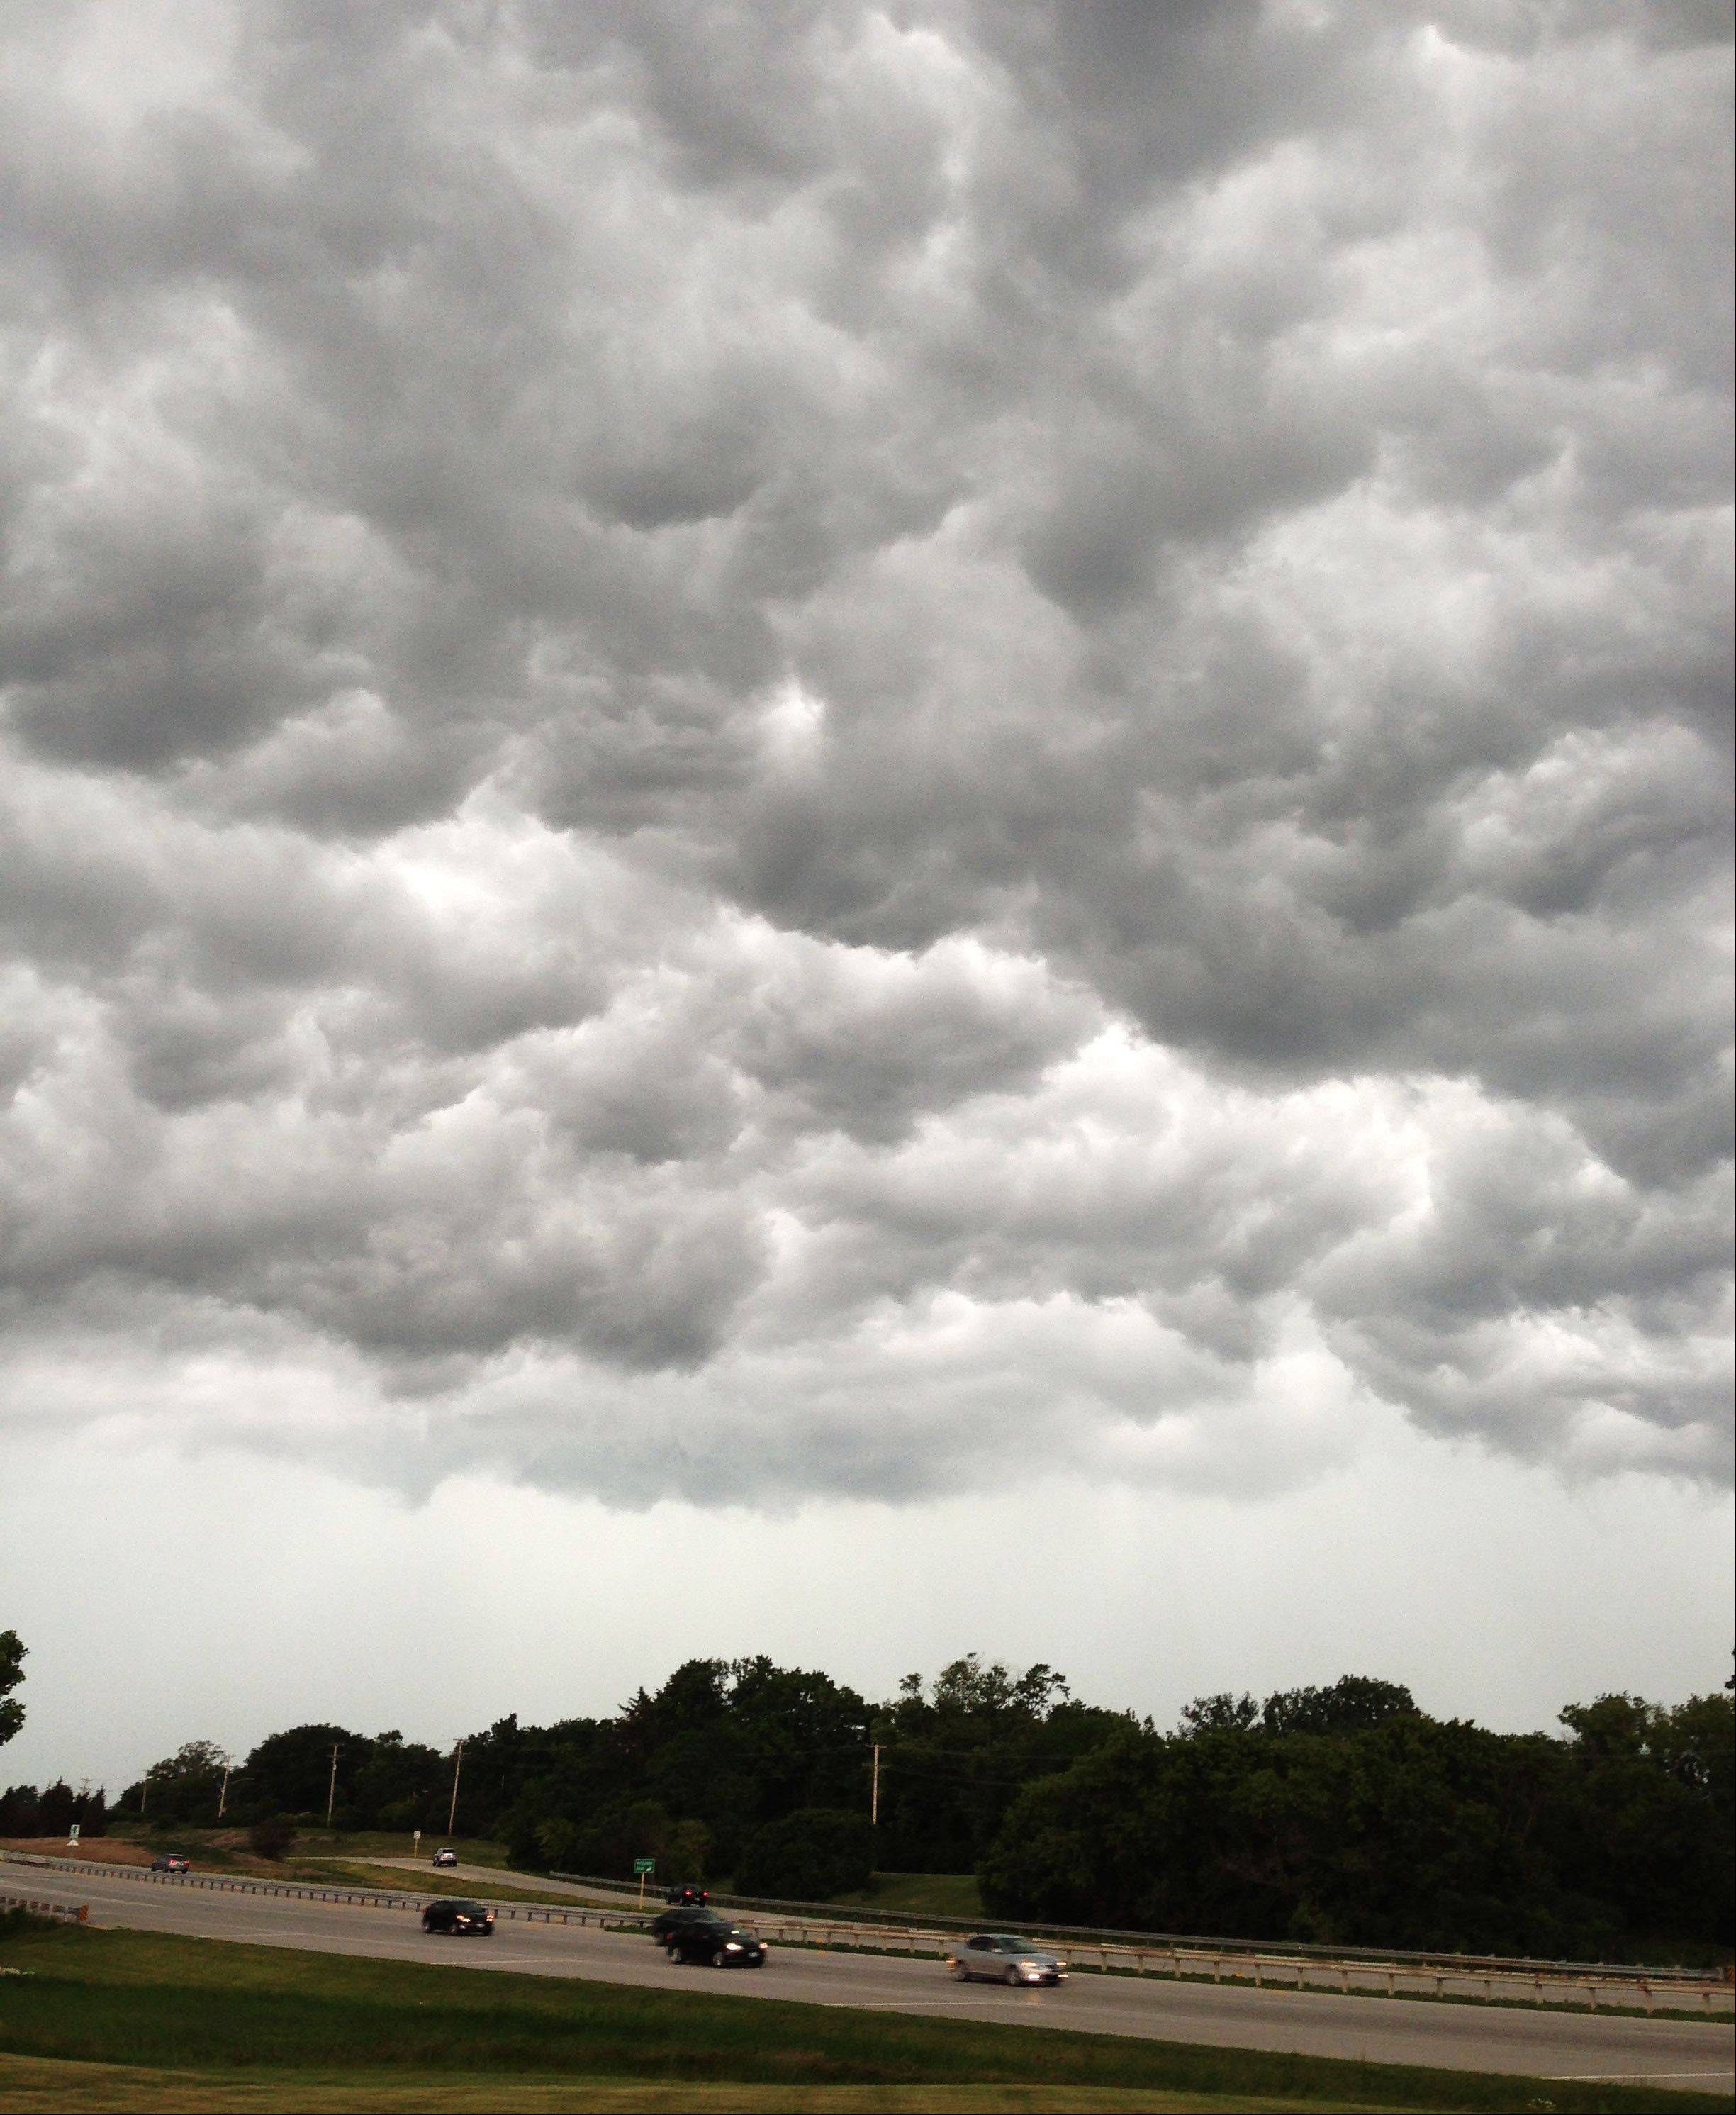 Storm clouds move in over Libertyville early Friday afternoon.